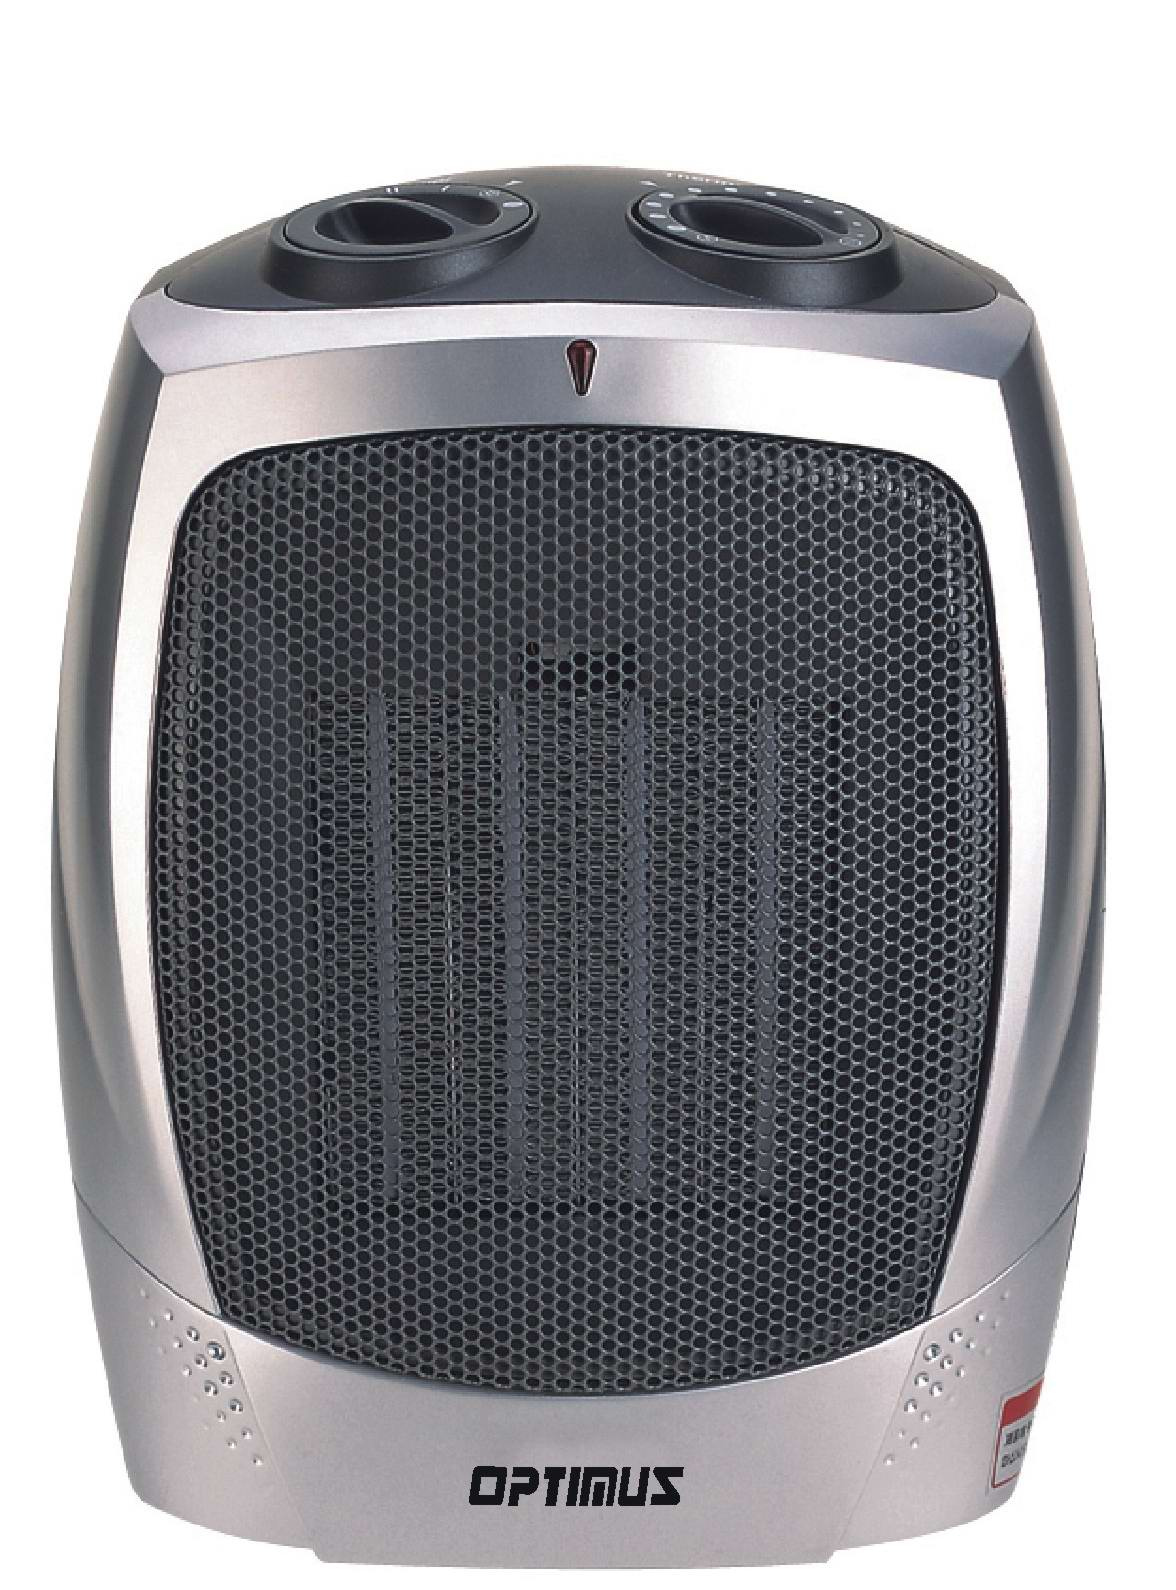 Optimus h7004 heater portable ceramic with thermostat